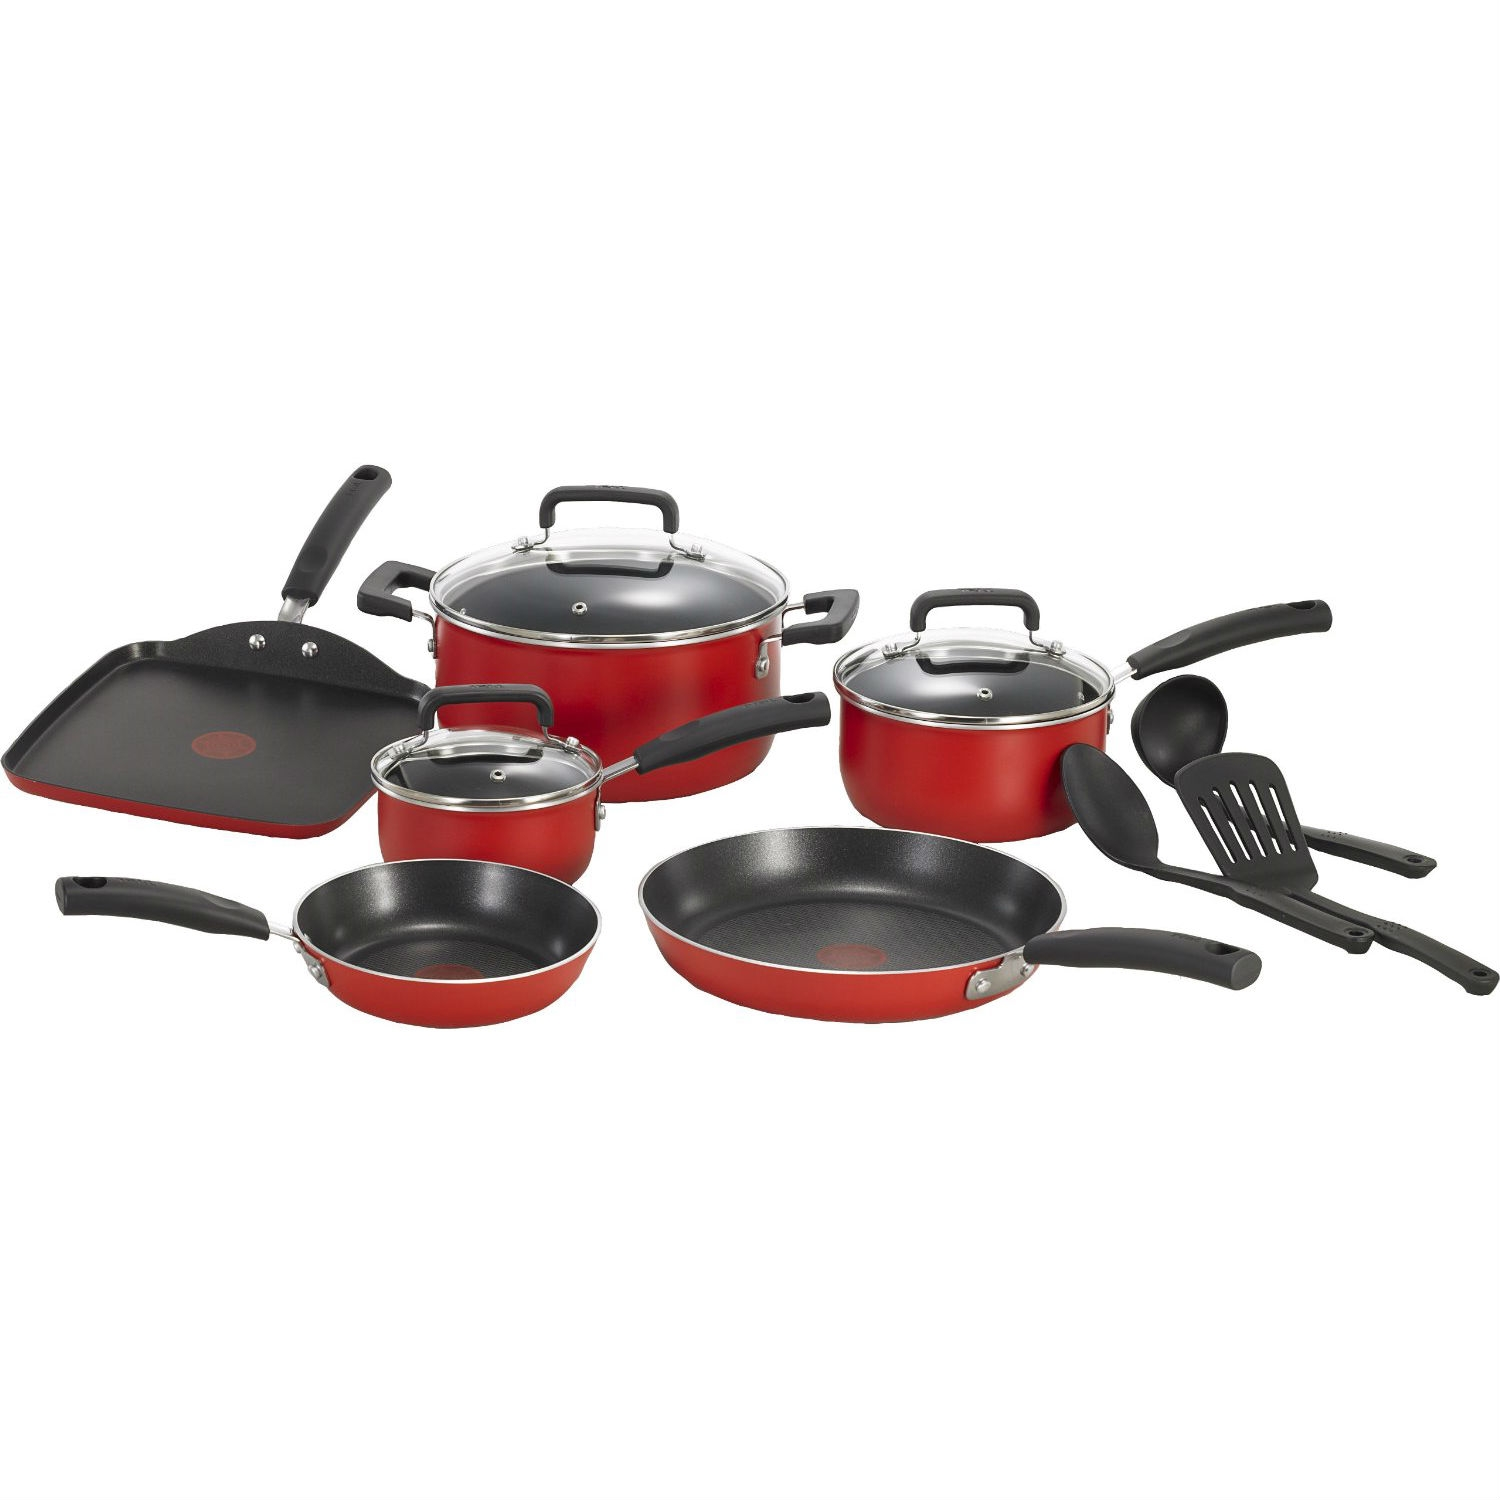 this 12piece nonstick cookware set in red would be a great addition to your